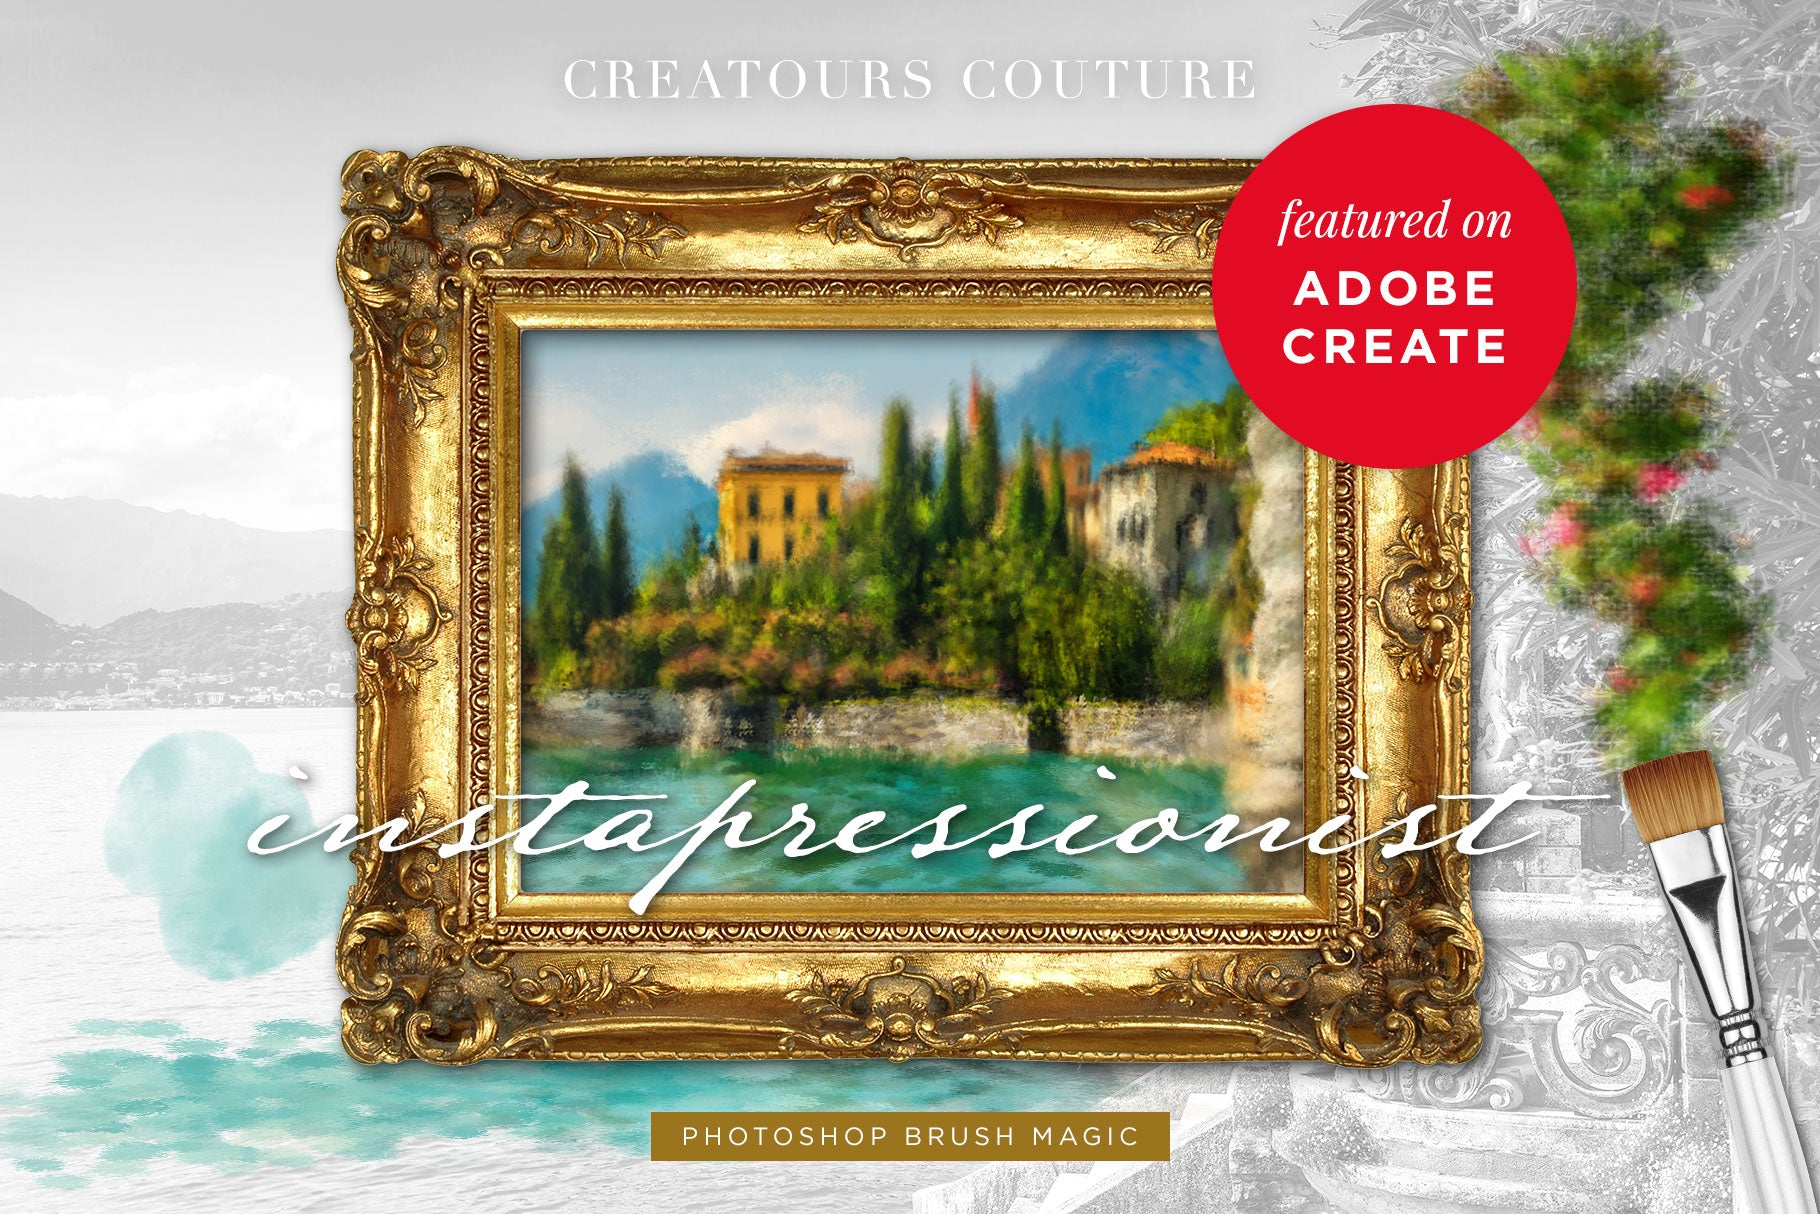 Instapressionist Photoshop Brush Magic: EARLY ACCESS PRICING ENDS SOON - Creators Couture